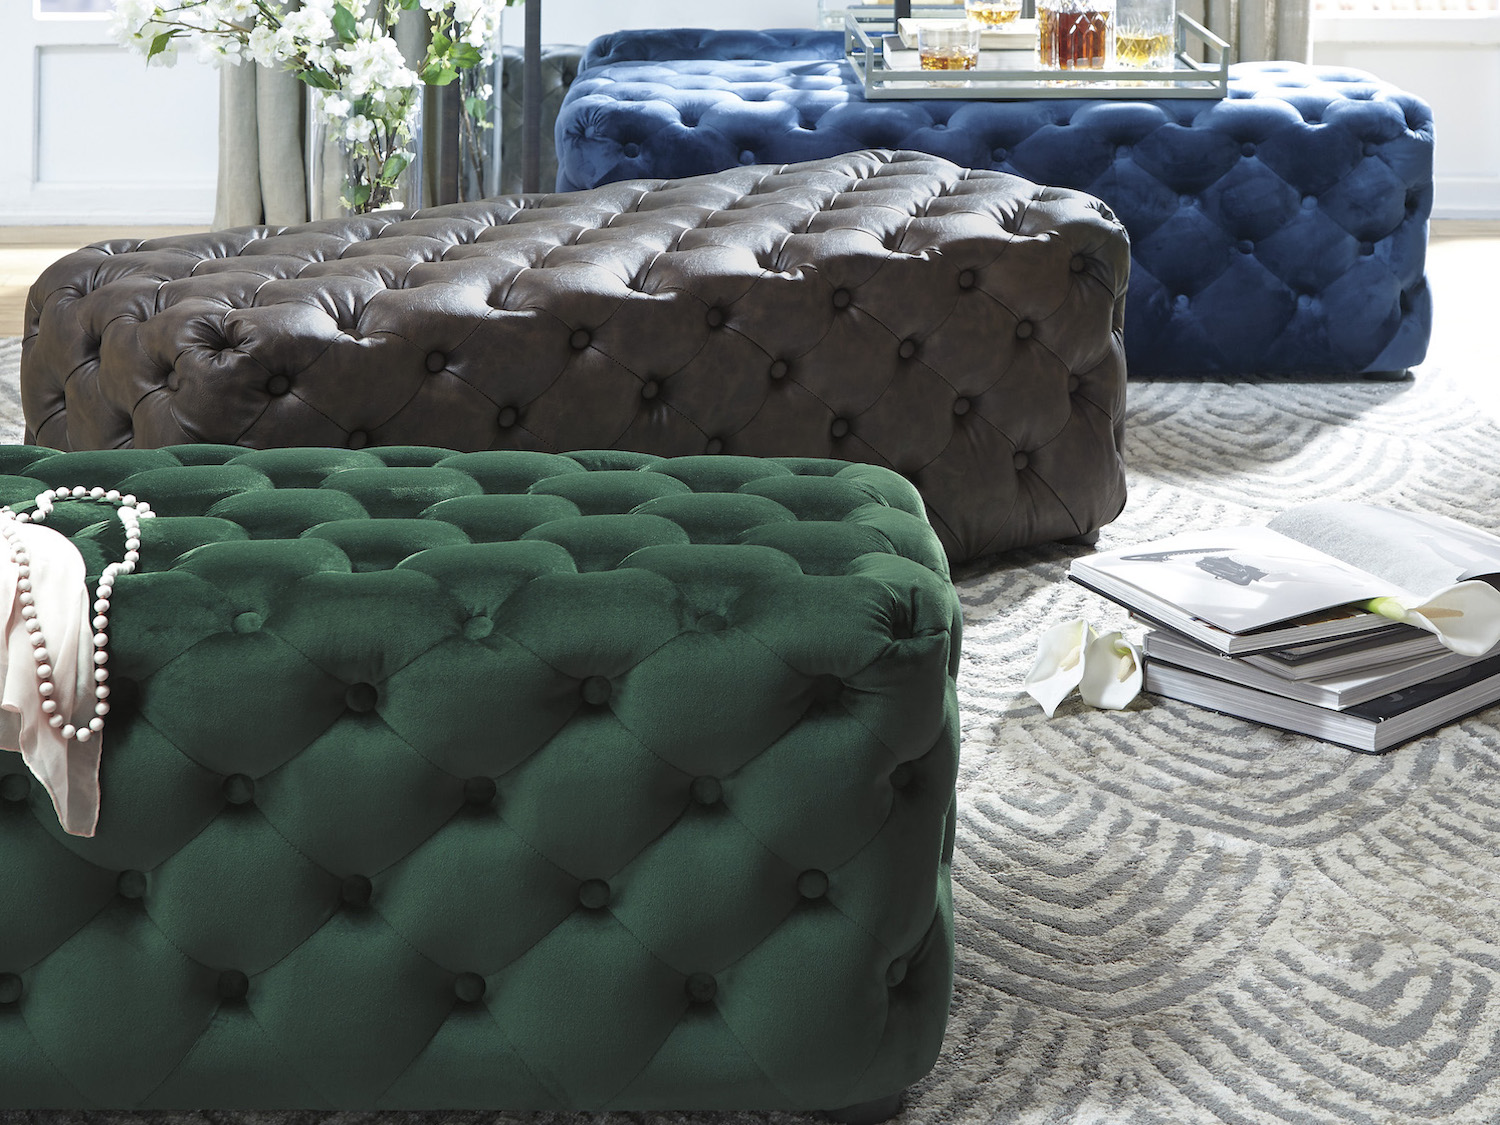 Lister Accent Ottoman, A3000169/170/171, Ottoman by Midha Furniture to Brampton, Mississauga, Etobicoke, Toronto, Scraborough, Caledon, Oakville, Markham, Ajax, Pickering, Oshawa, Richmondhill, Kitchener, Hamilton, Cambridge, Waterloo and GTA area